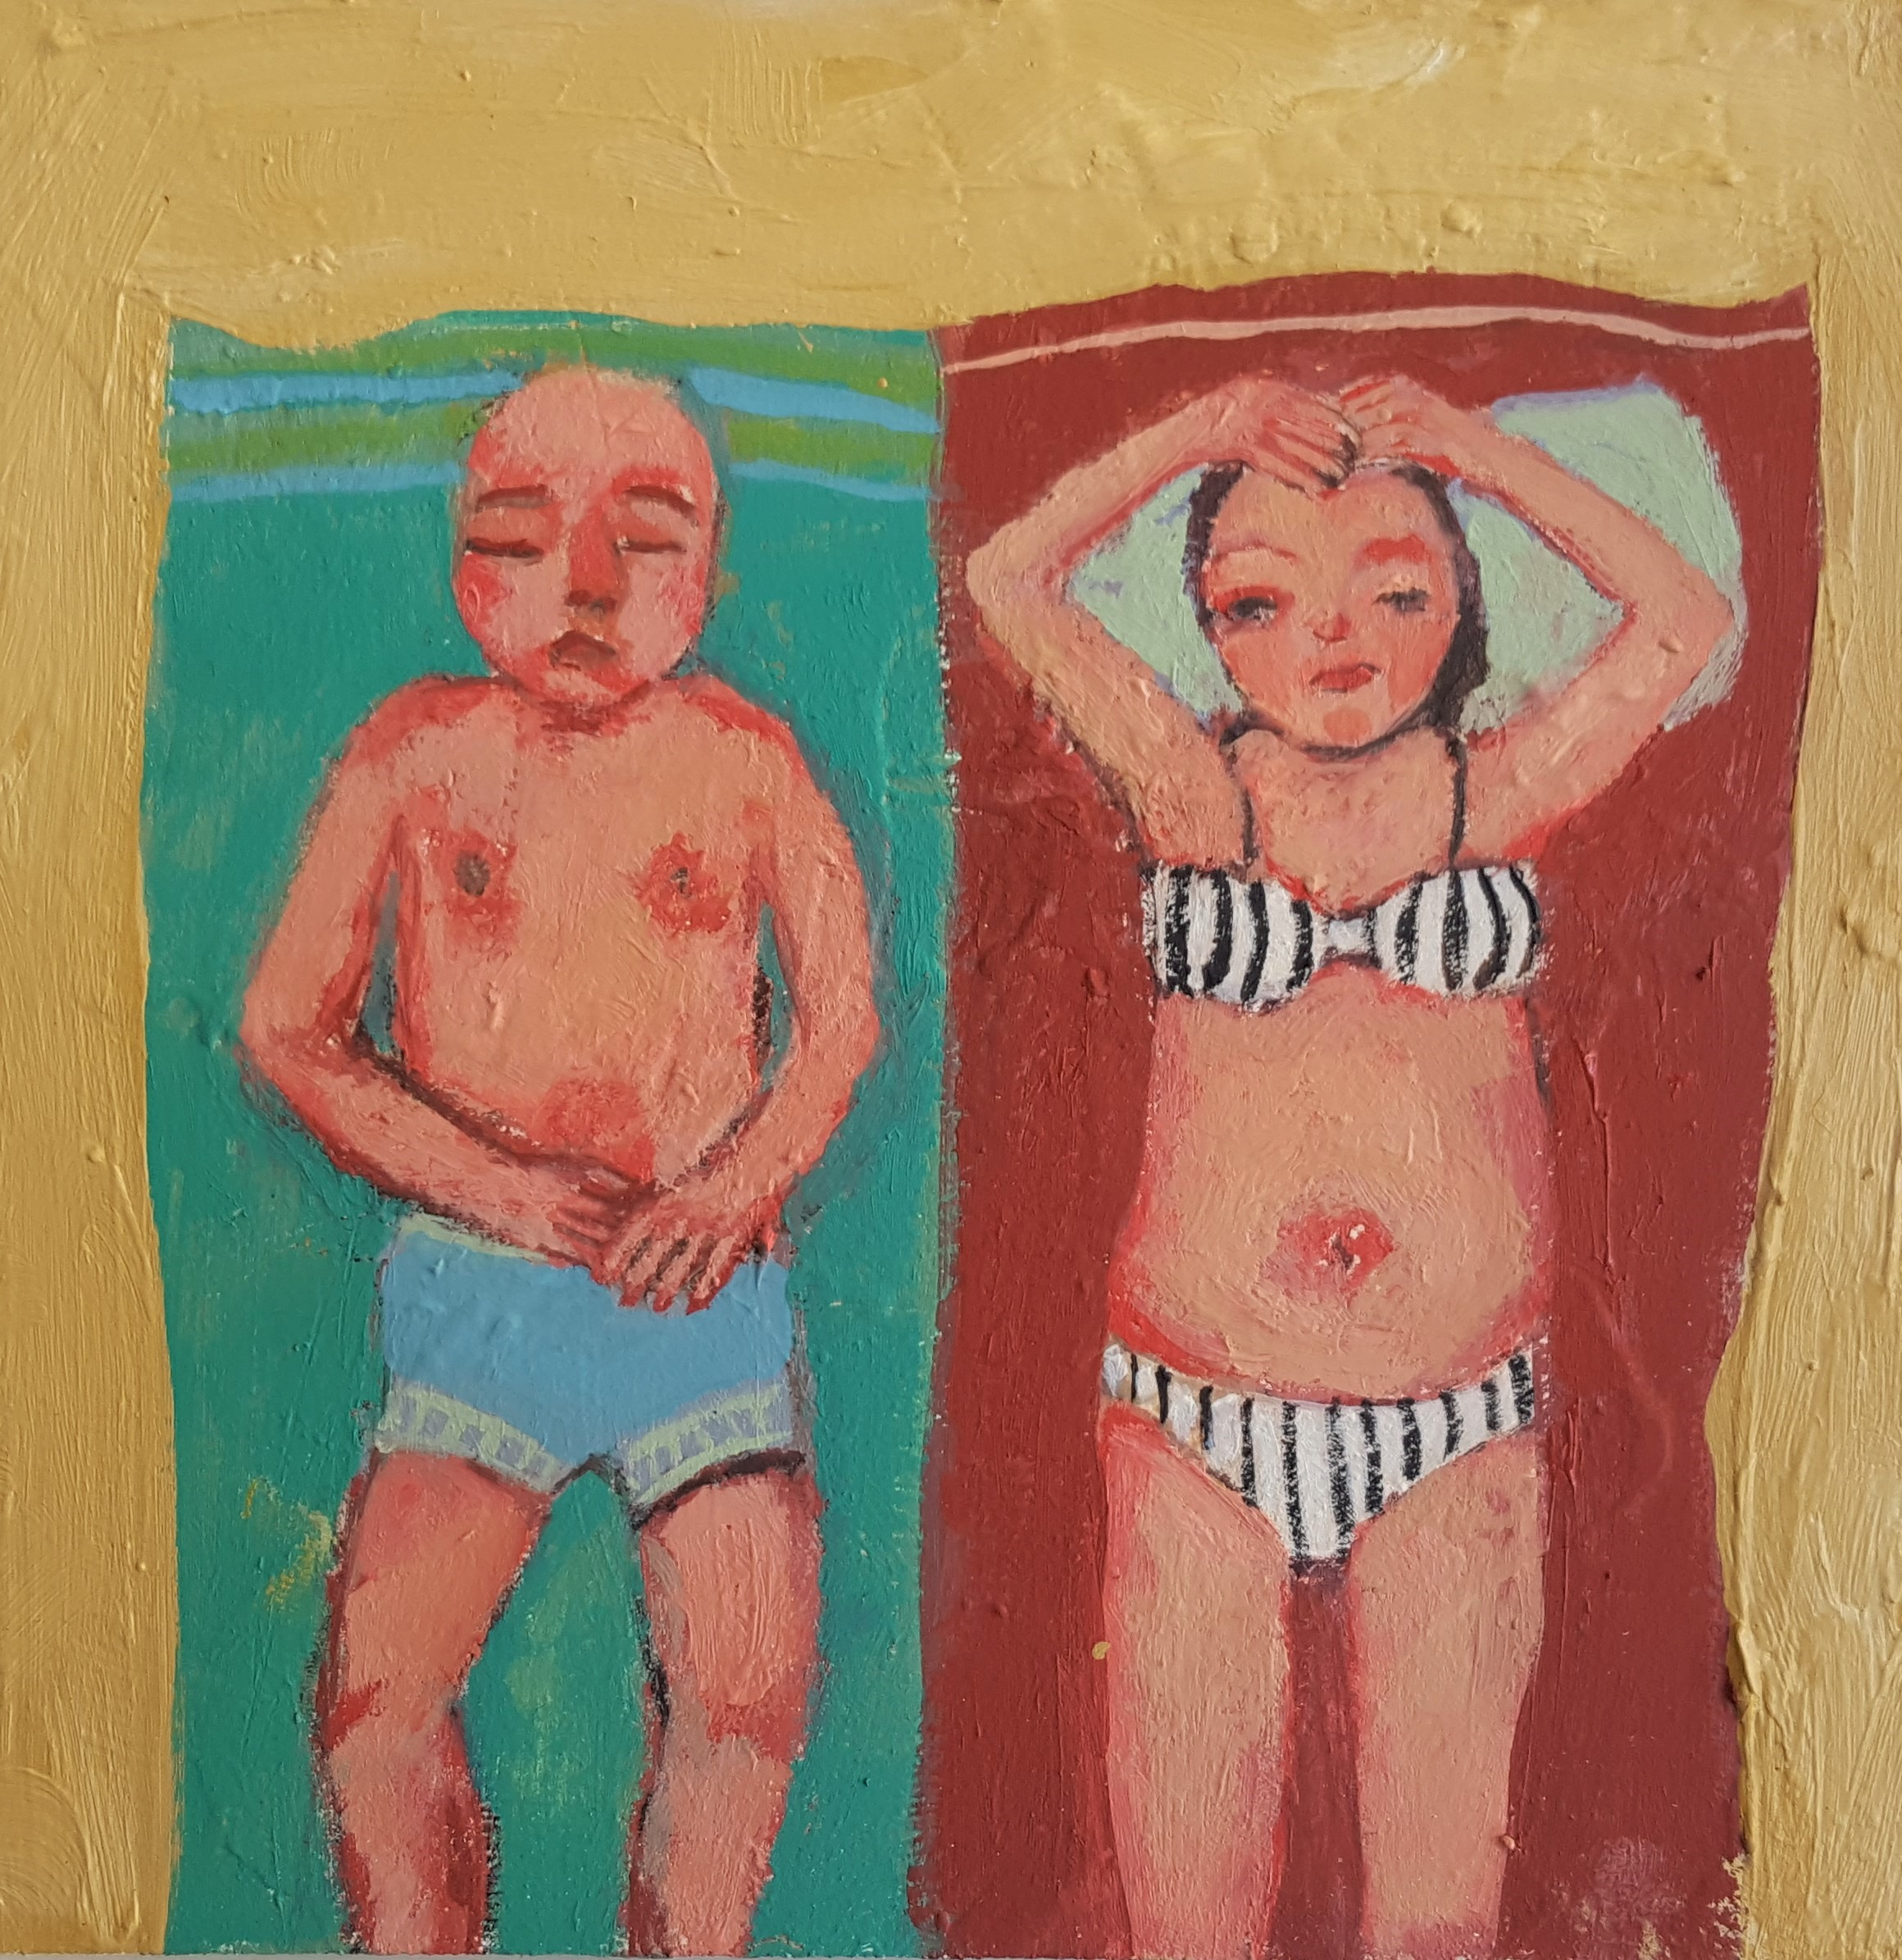 'Sun Bathing' by Siobhan Purdy, shown at the Byre Gallery